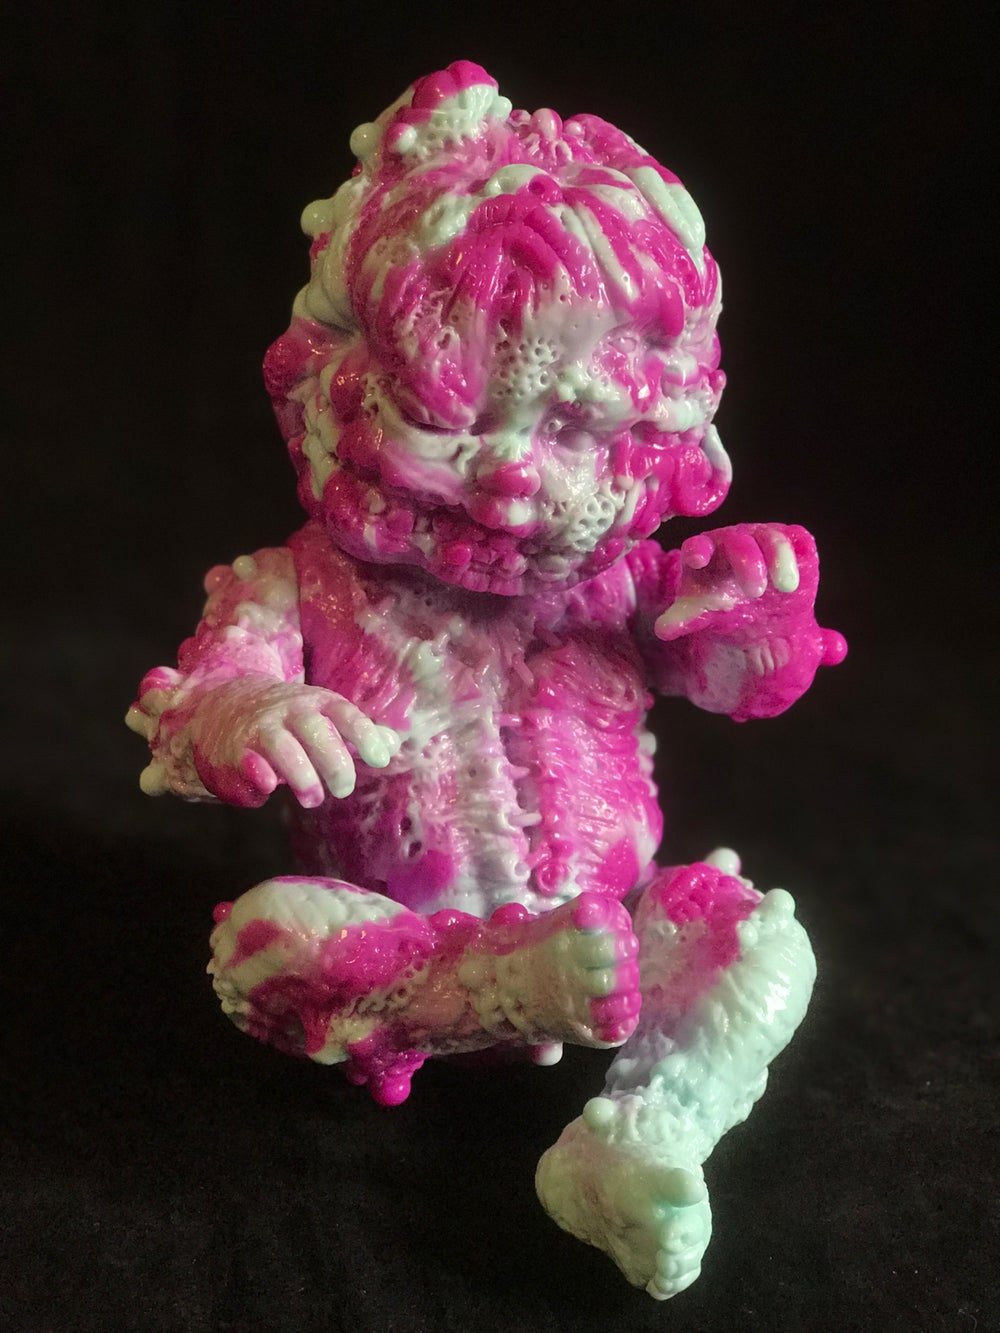 Image of Bittersweet 2 Color Marble Autopsy Zombie Staple Baby